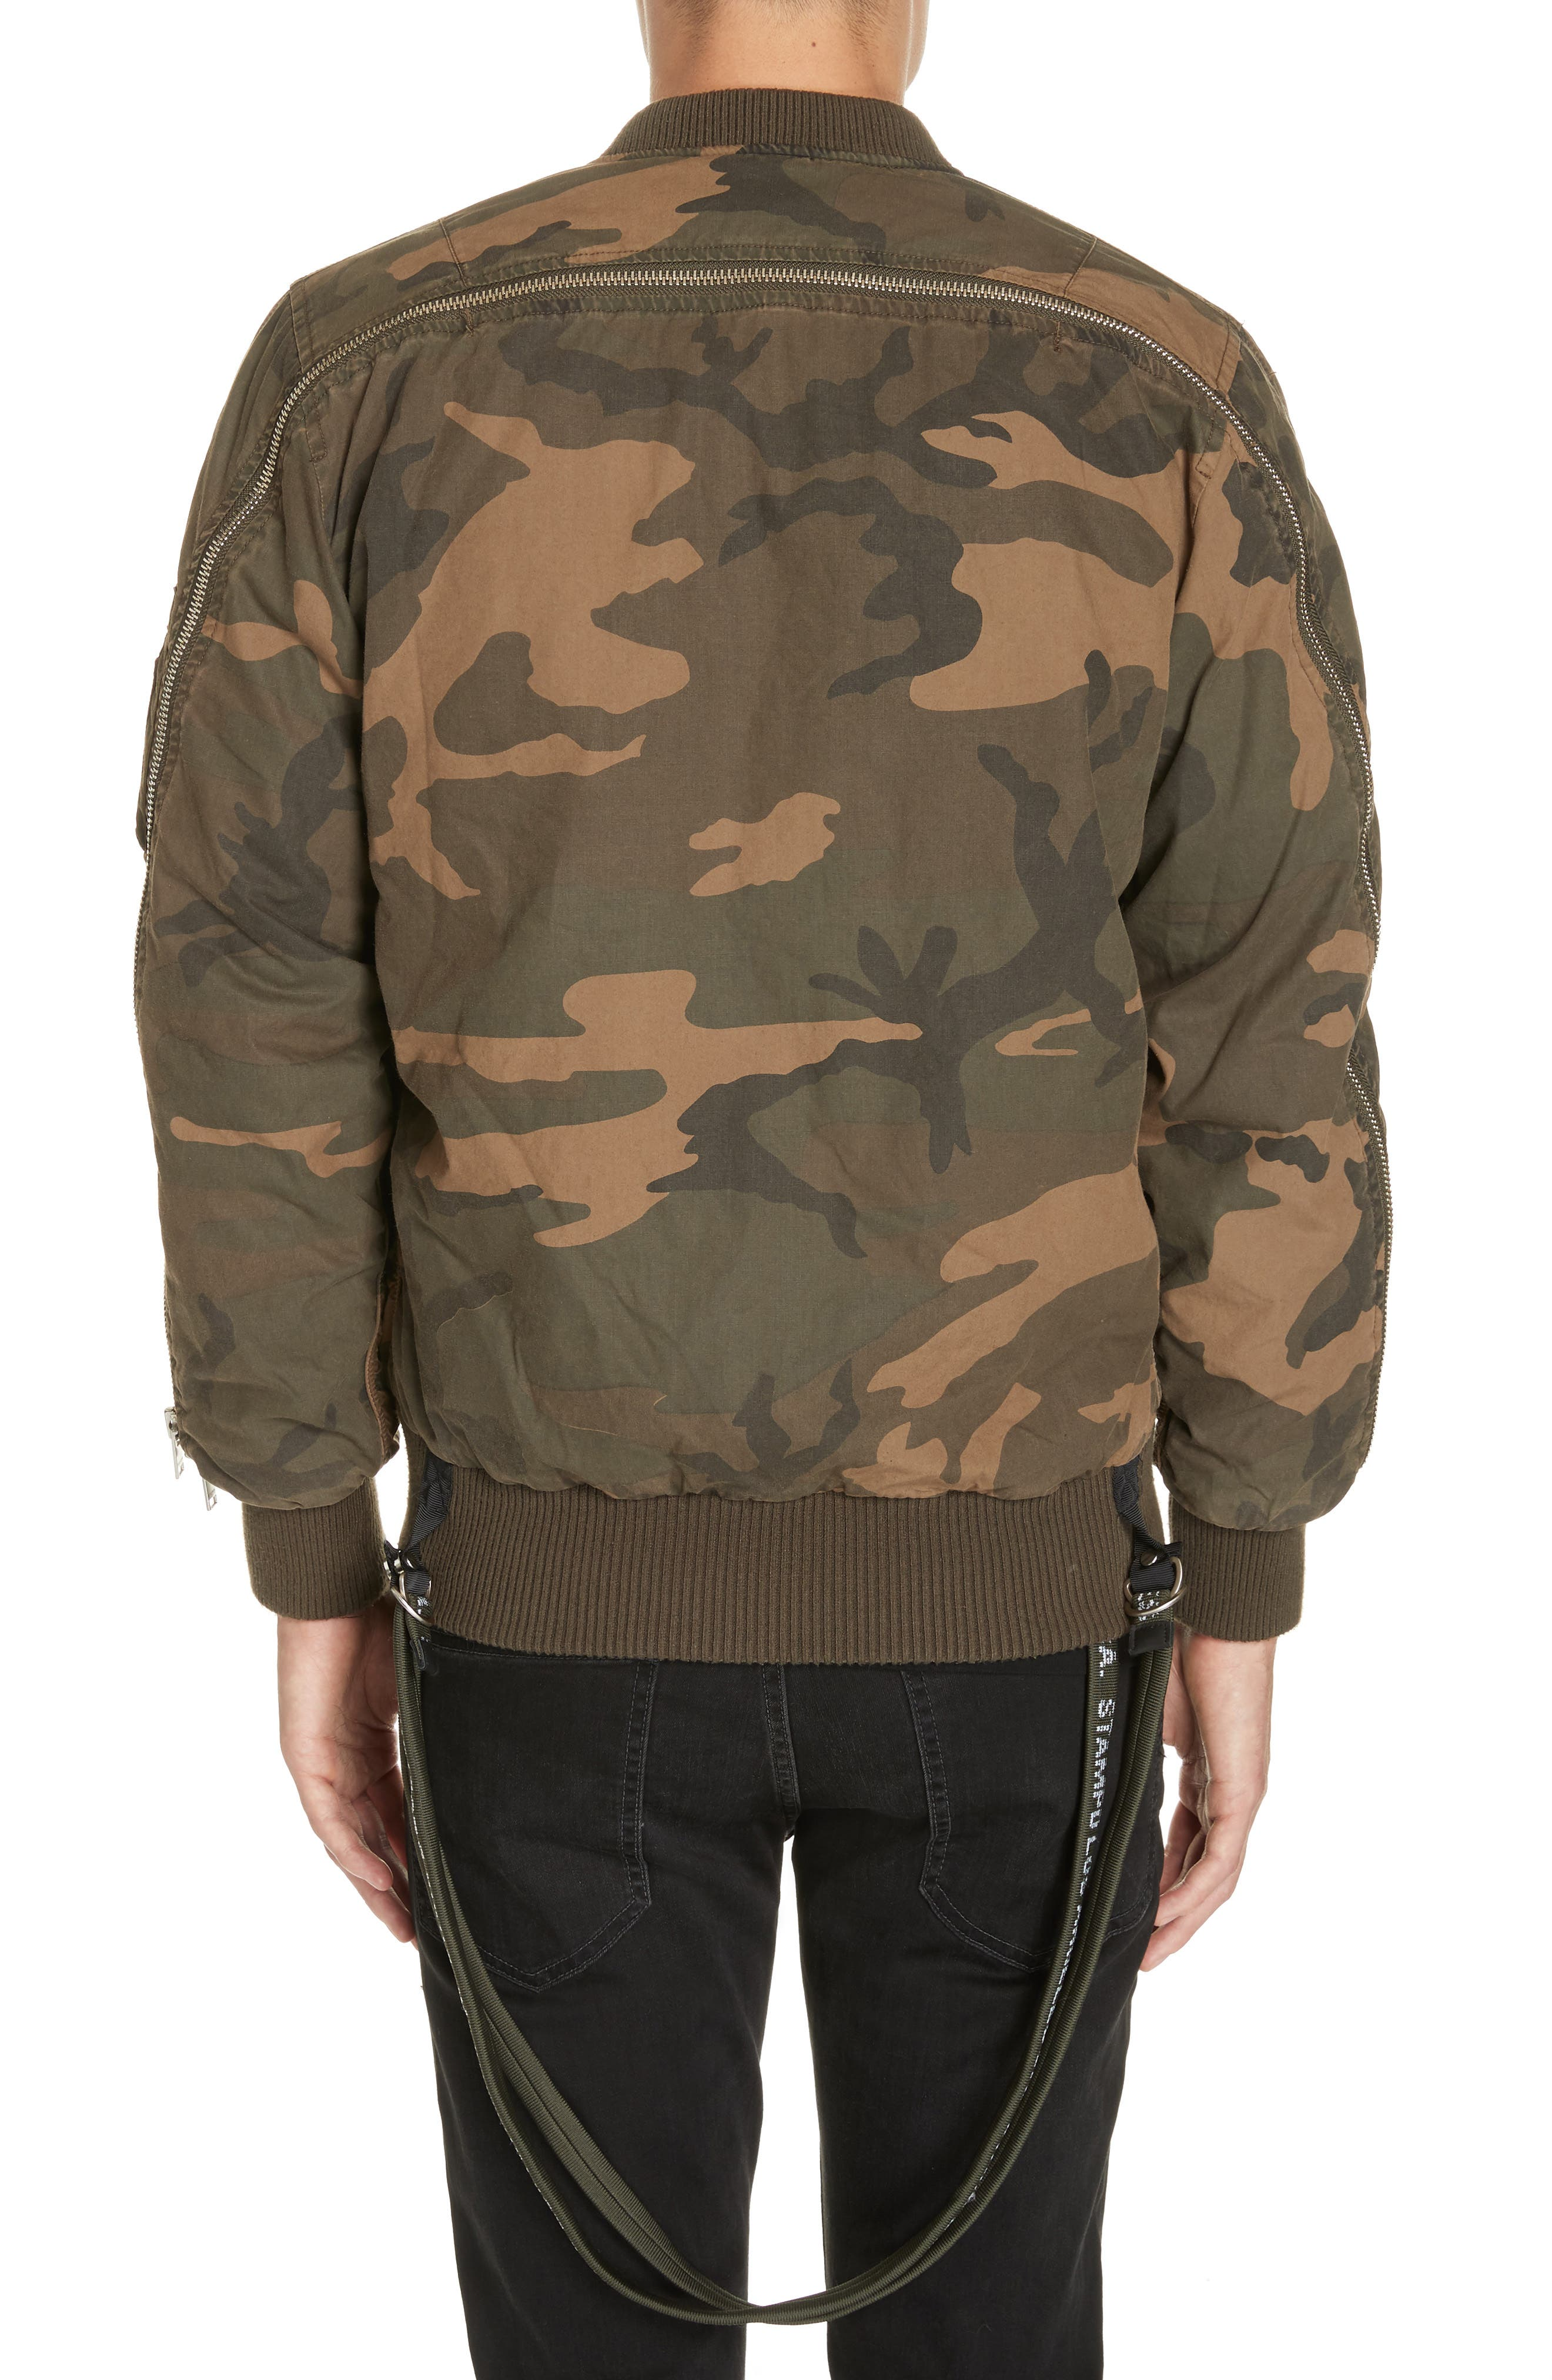 Convoy Strap Bomber Jacket,                             Alternate thumbnail 2, color,                             310